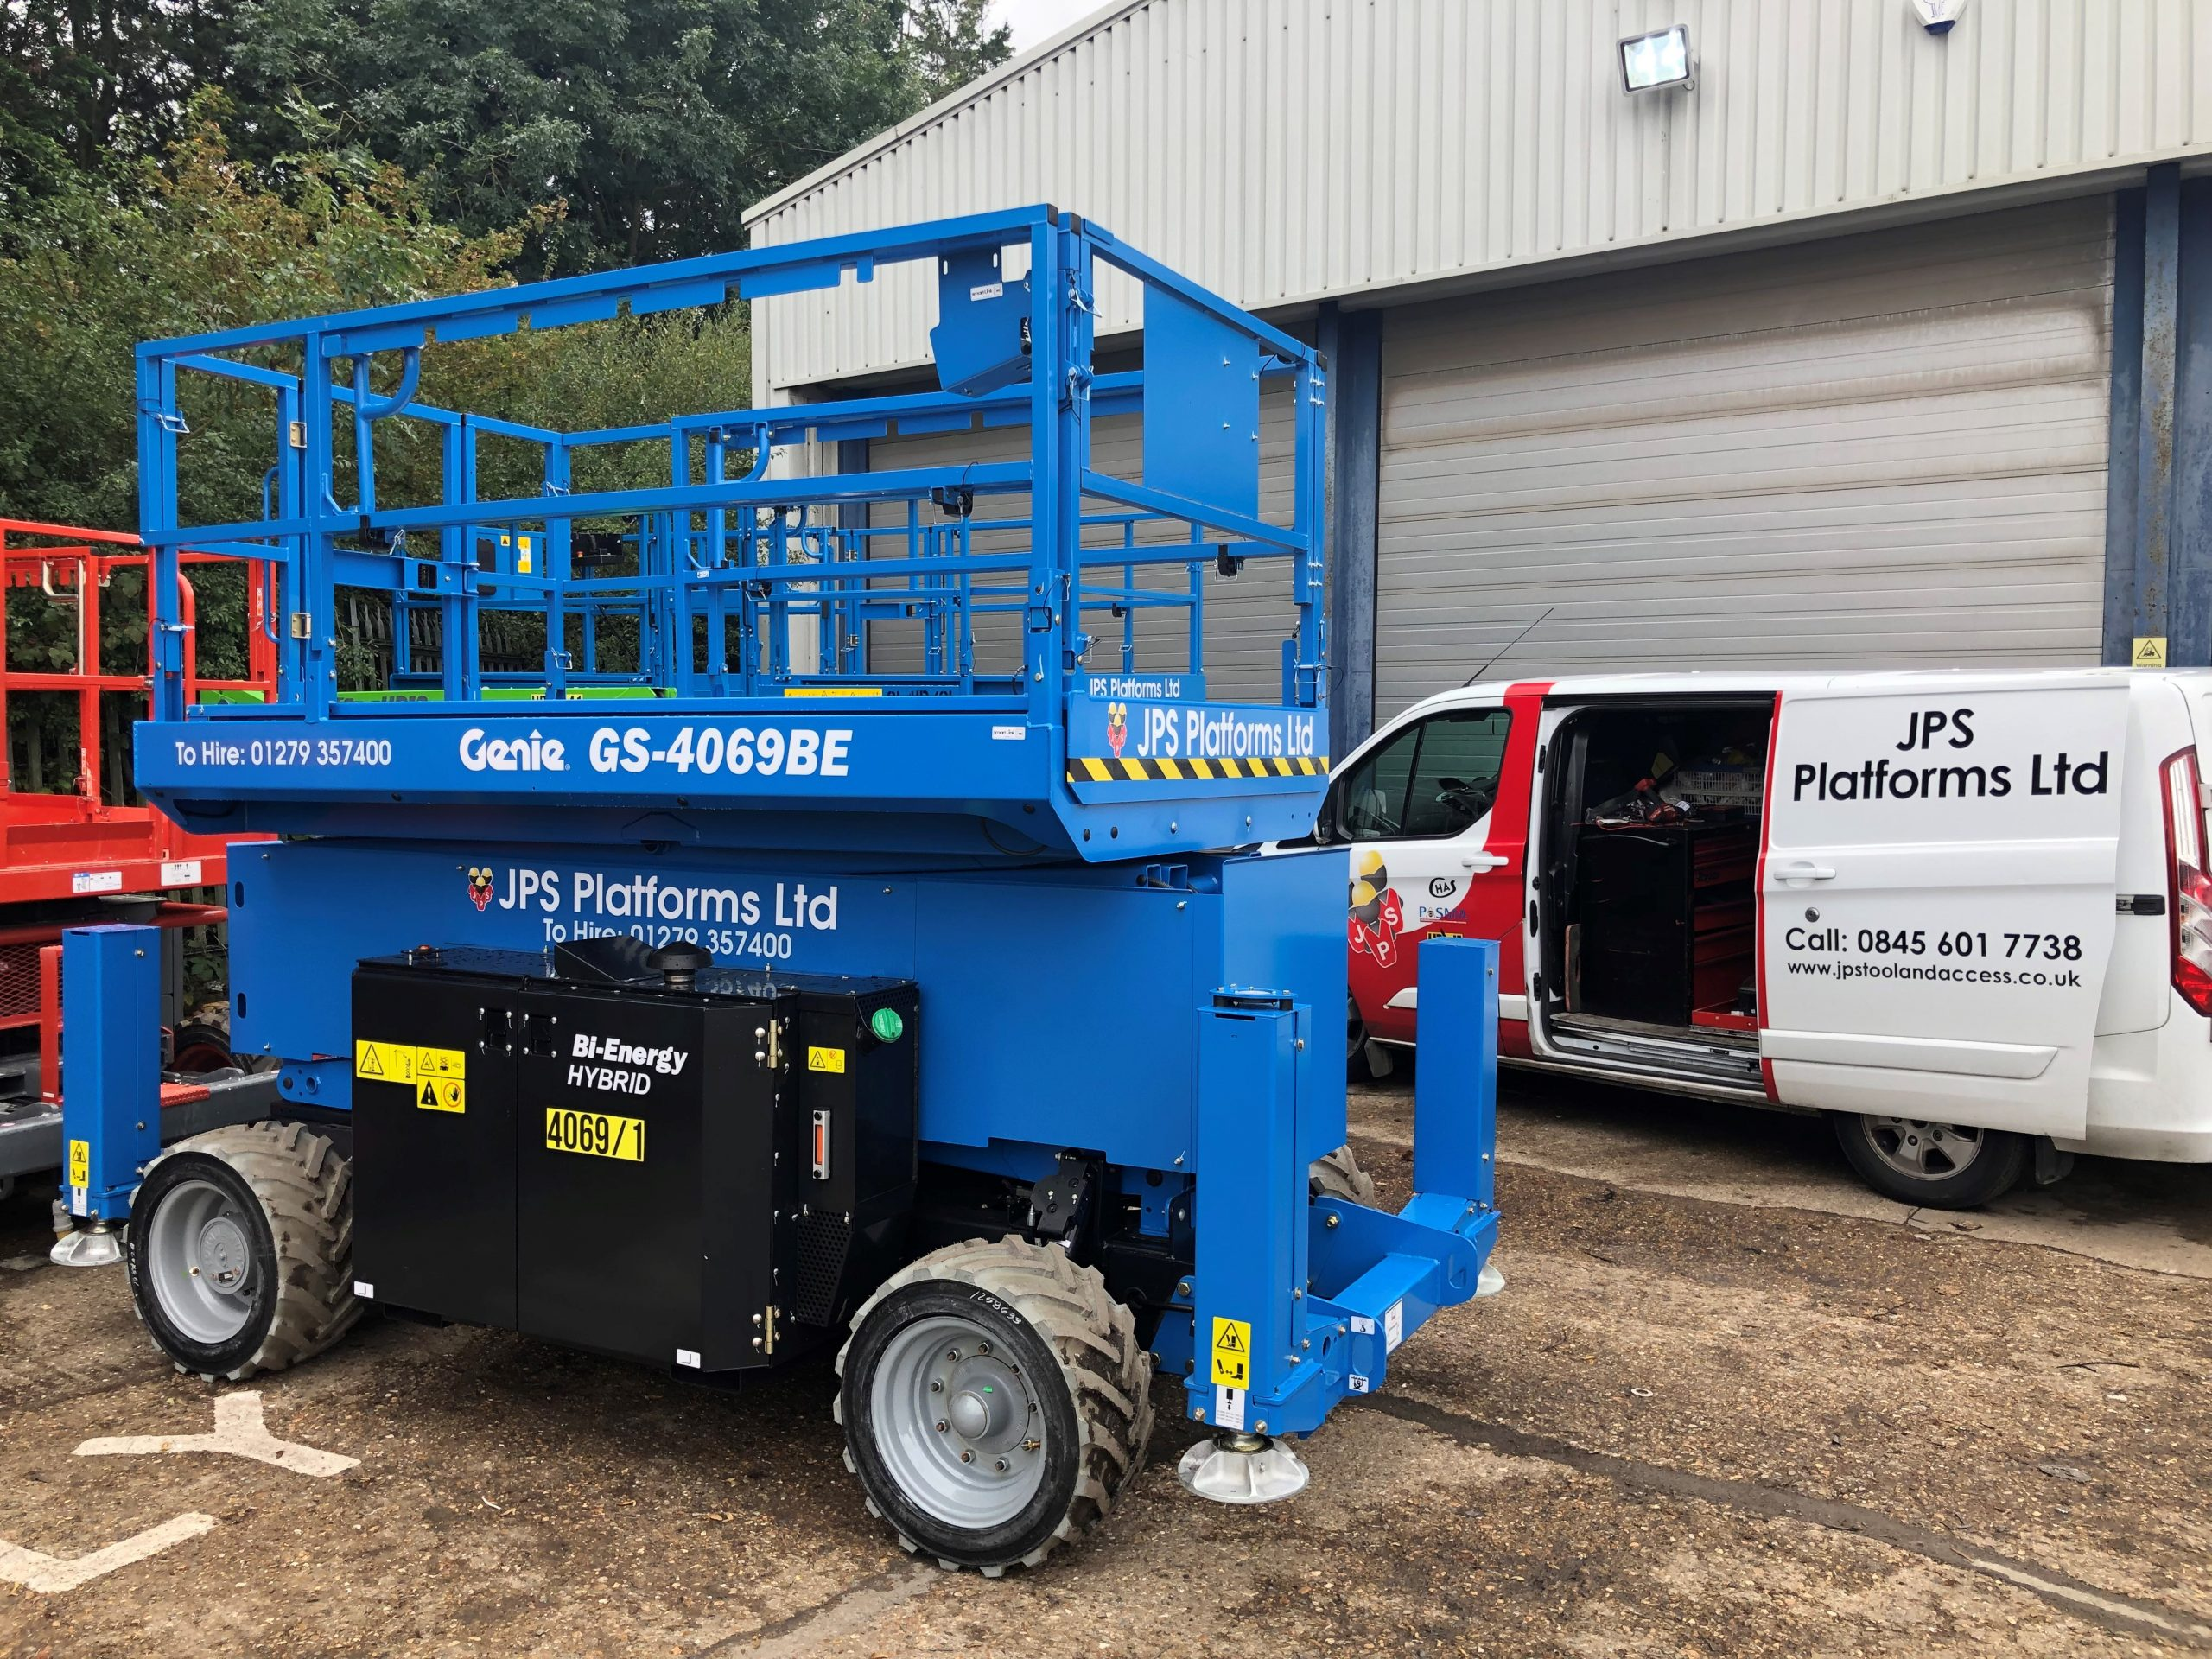 4 New Eco-friendly Bi-Energy Scissor Lifts Ready for Hire